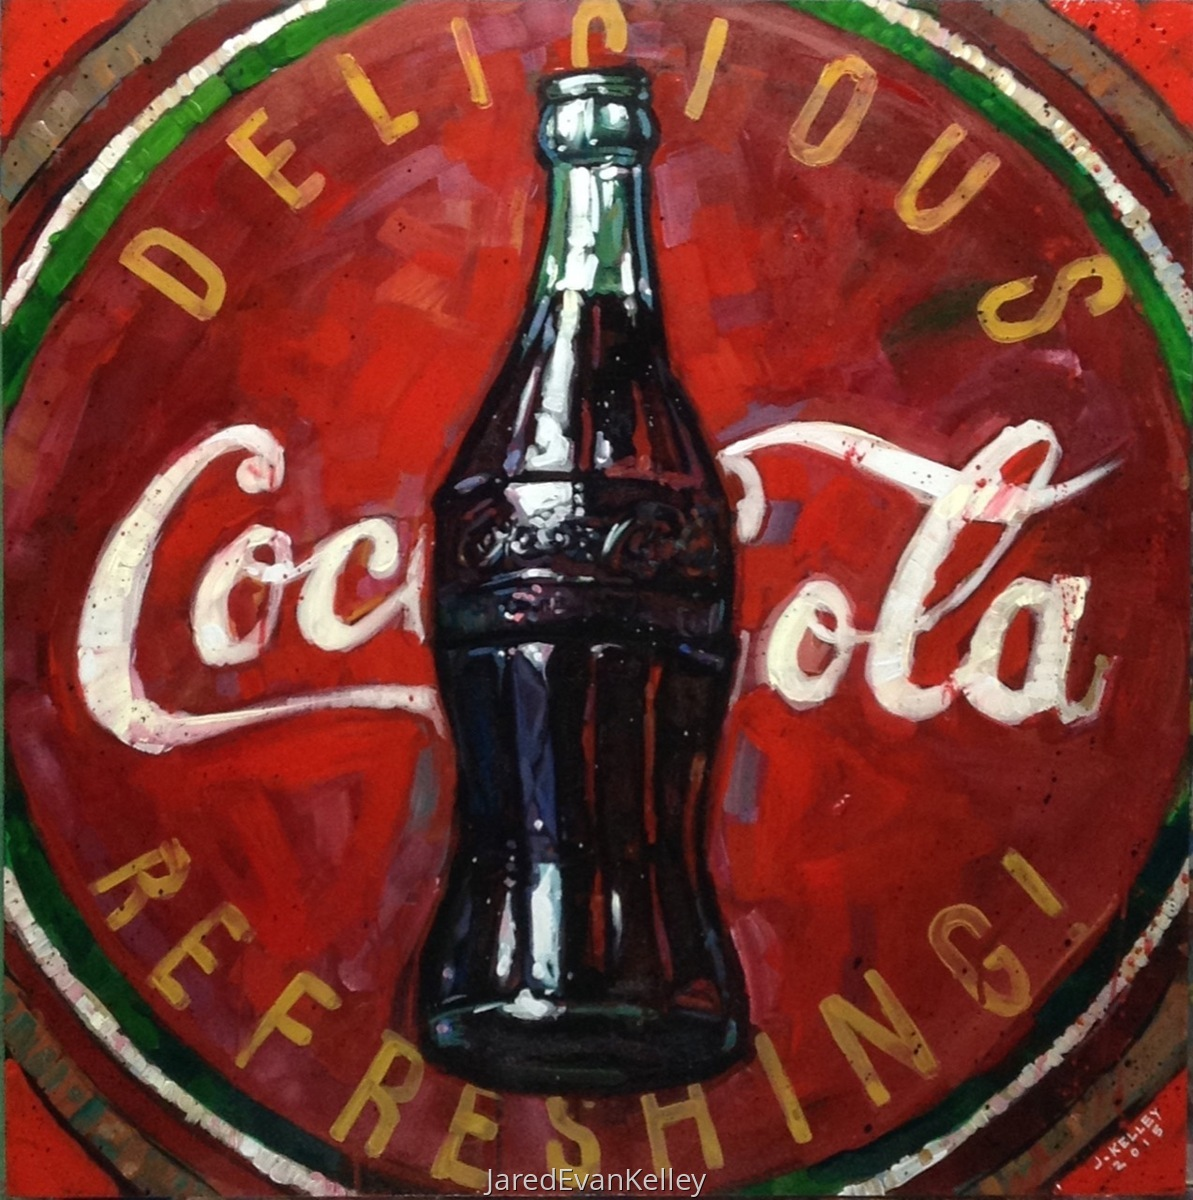 Cola (Red) (large view)